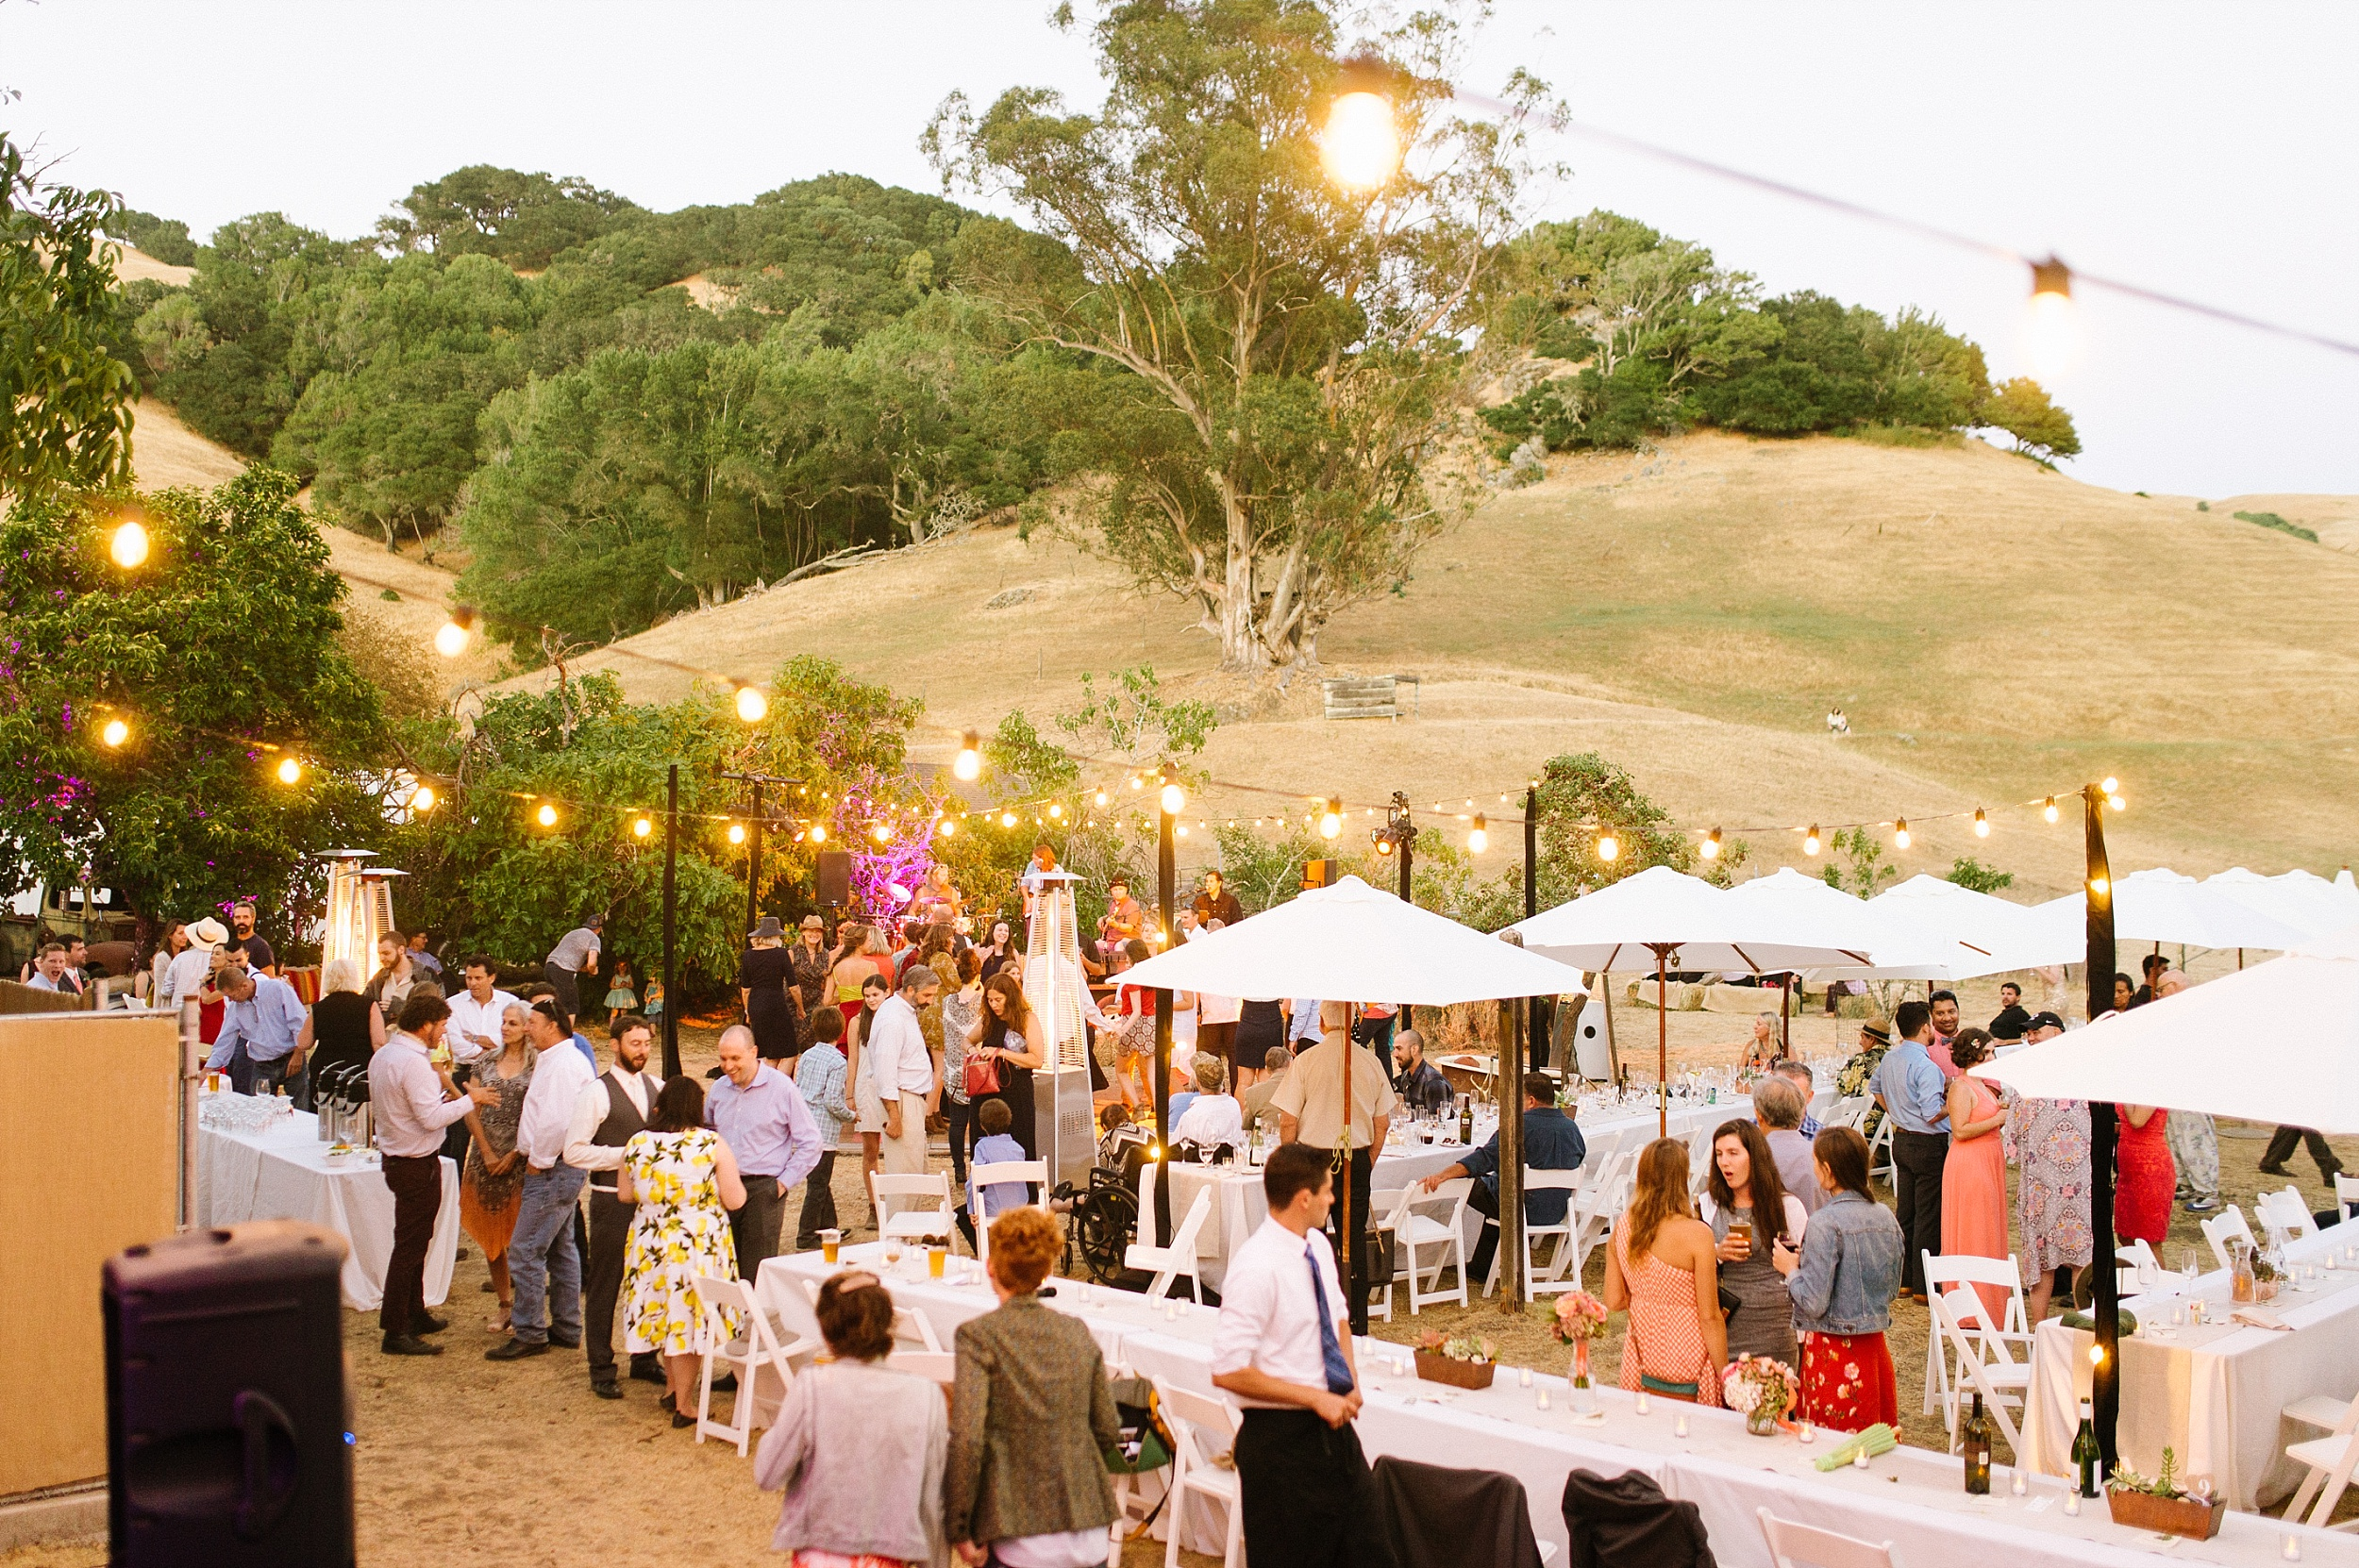 fairfax_ranch_wedding_chelsea_dier_photography_0055.jpg